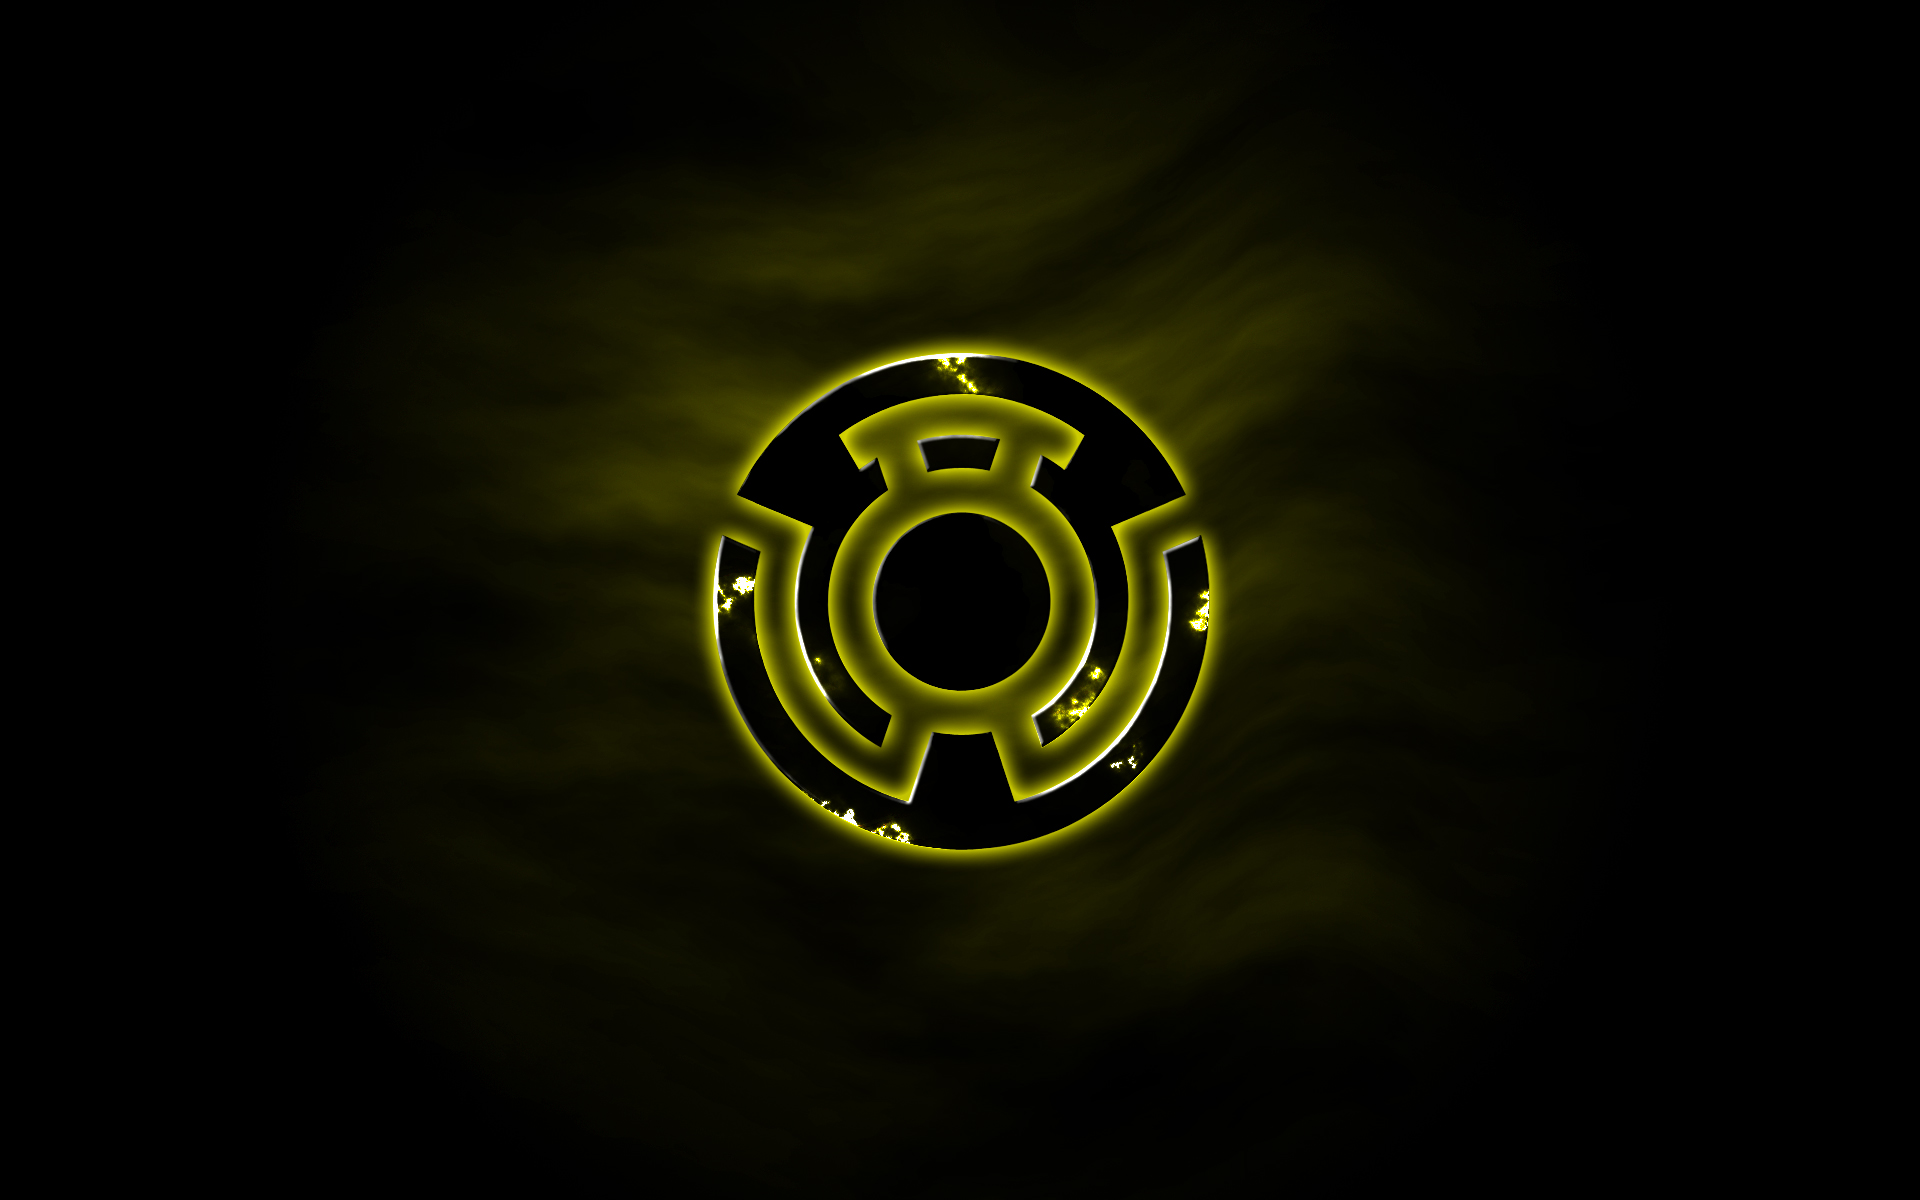 yellow lantern logo - HD 1920×1200